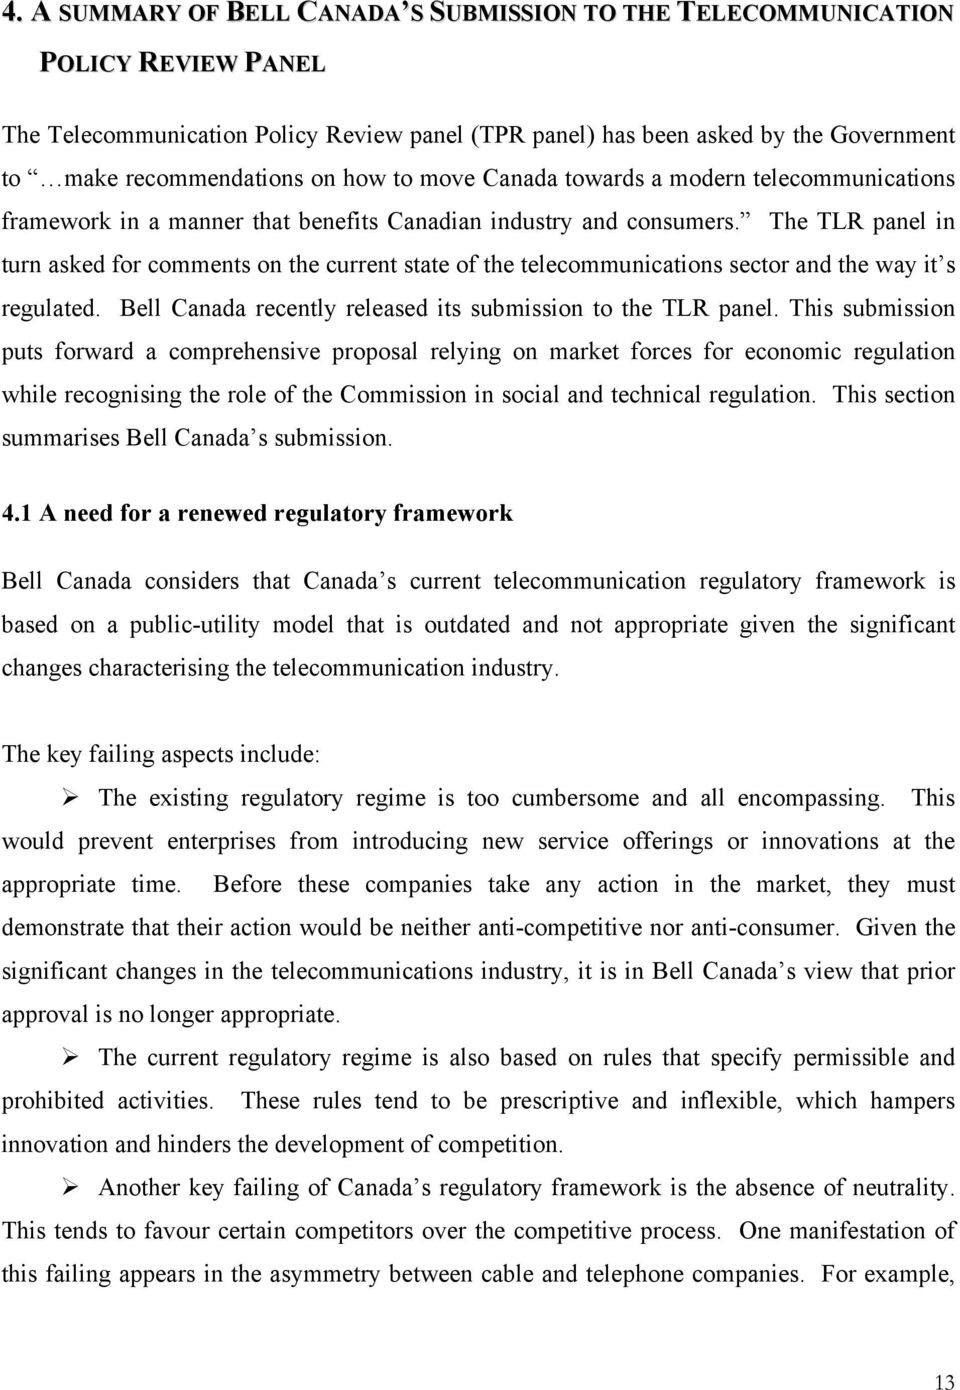 The TLR panel in turn asked for comments on the current state of the telecommunications sector and the way it s regulated. Bell Canada recently released its submission to the TLR panel.